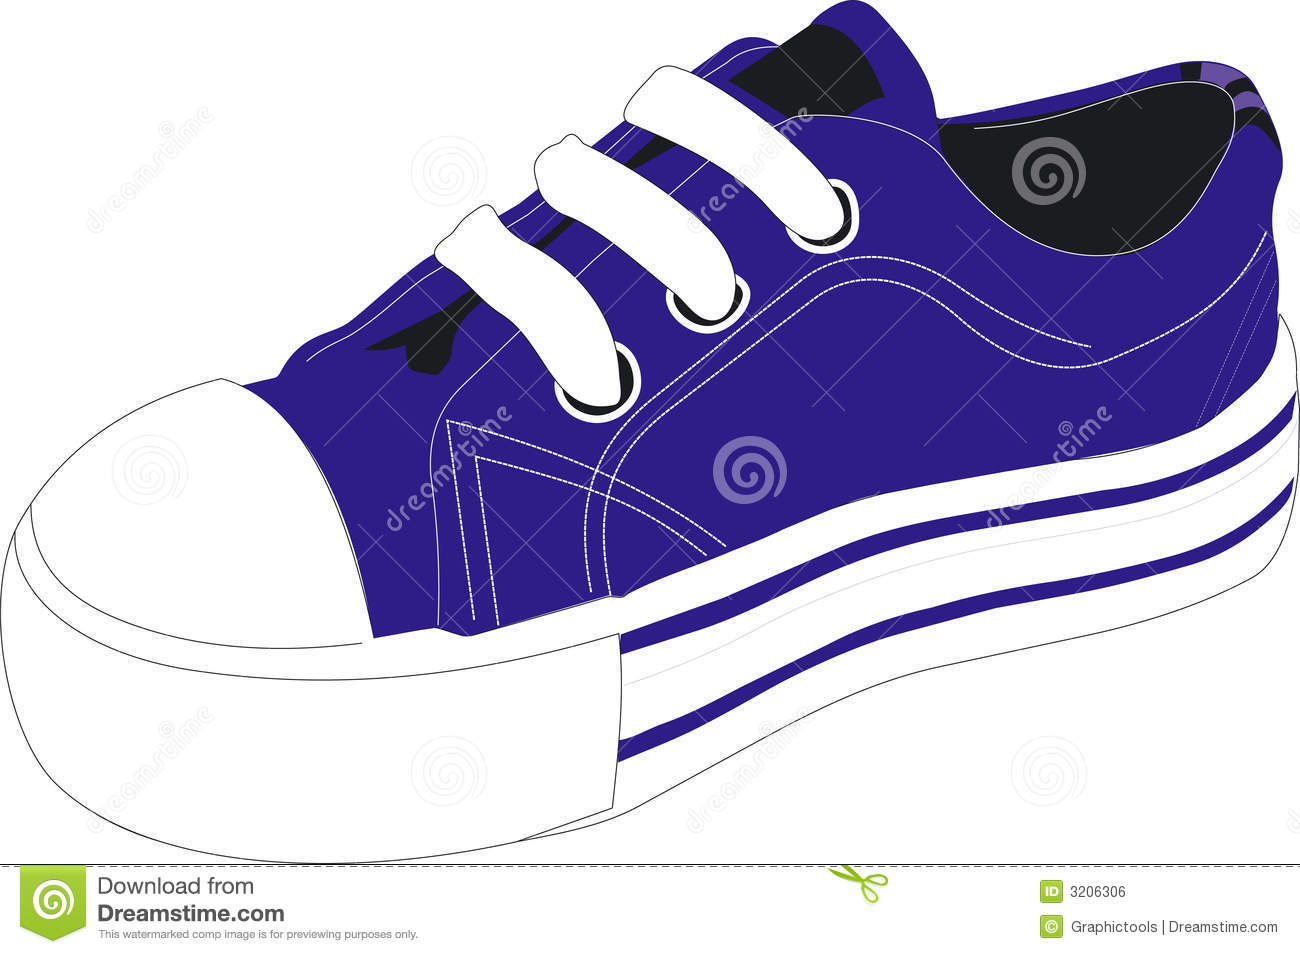 Clip Art Tennis Shoe Clip Art blue tennis shoe clipart resolution 1300x954